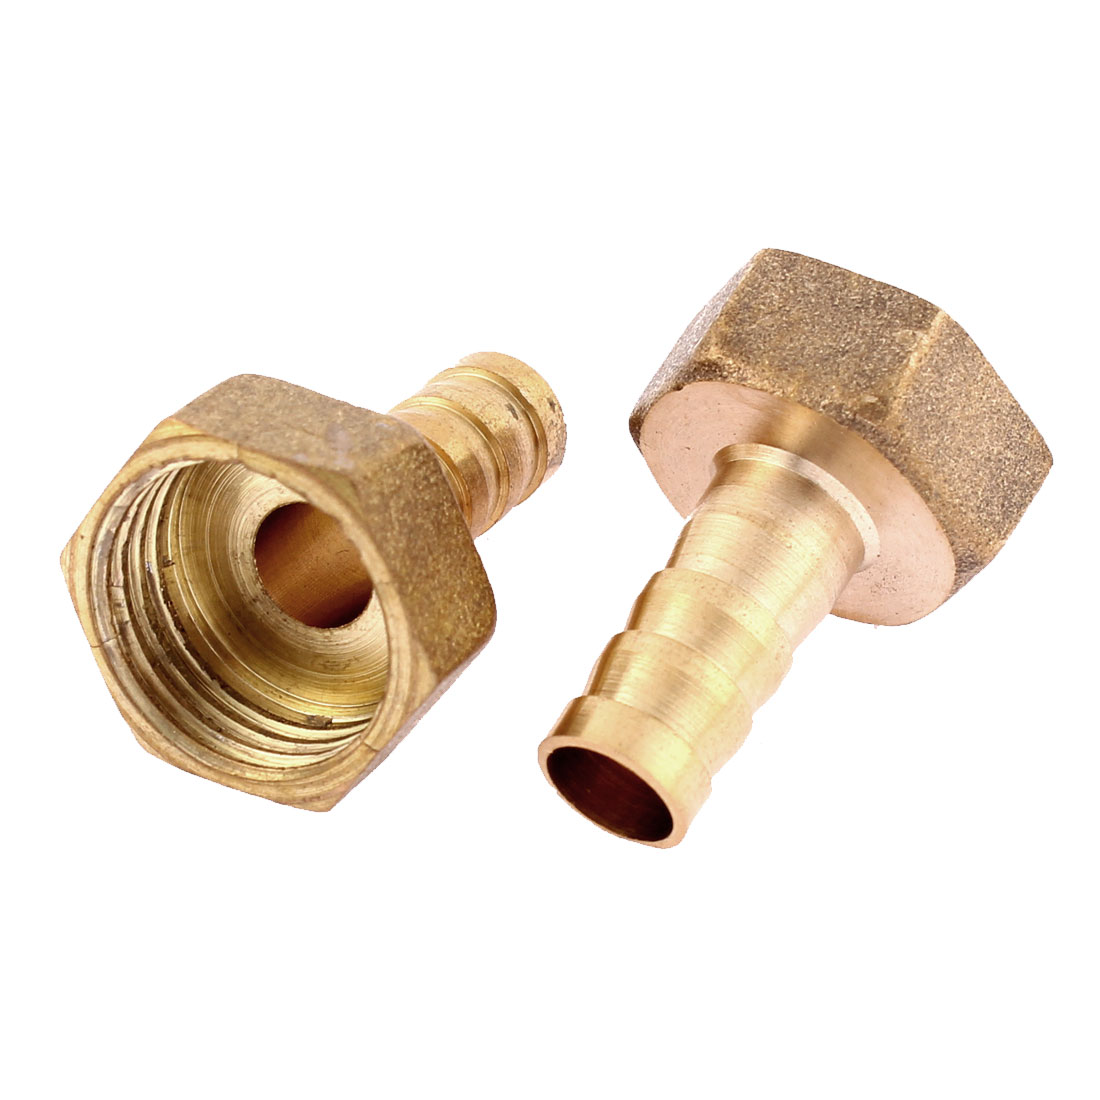 1/2BSP Female Thread 10mm Tubing Straight Hose Barb Fitting Quick Joint Connector 2pcs